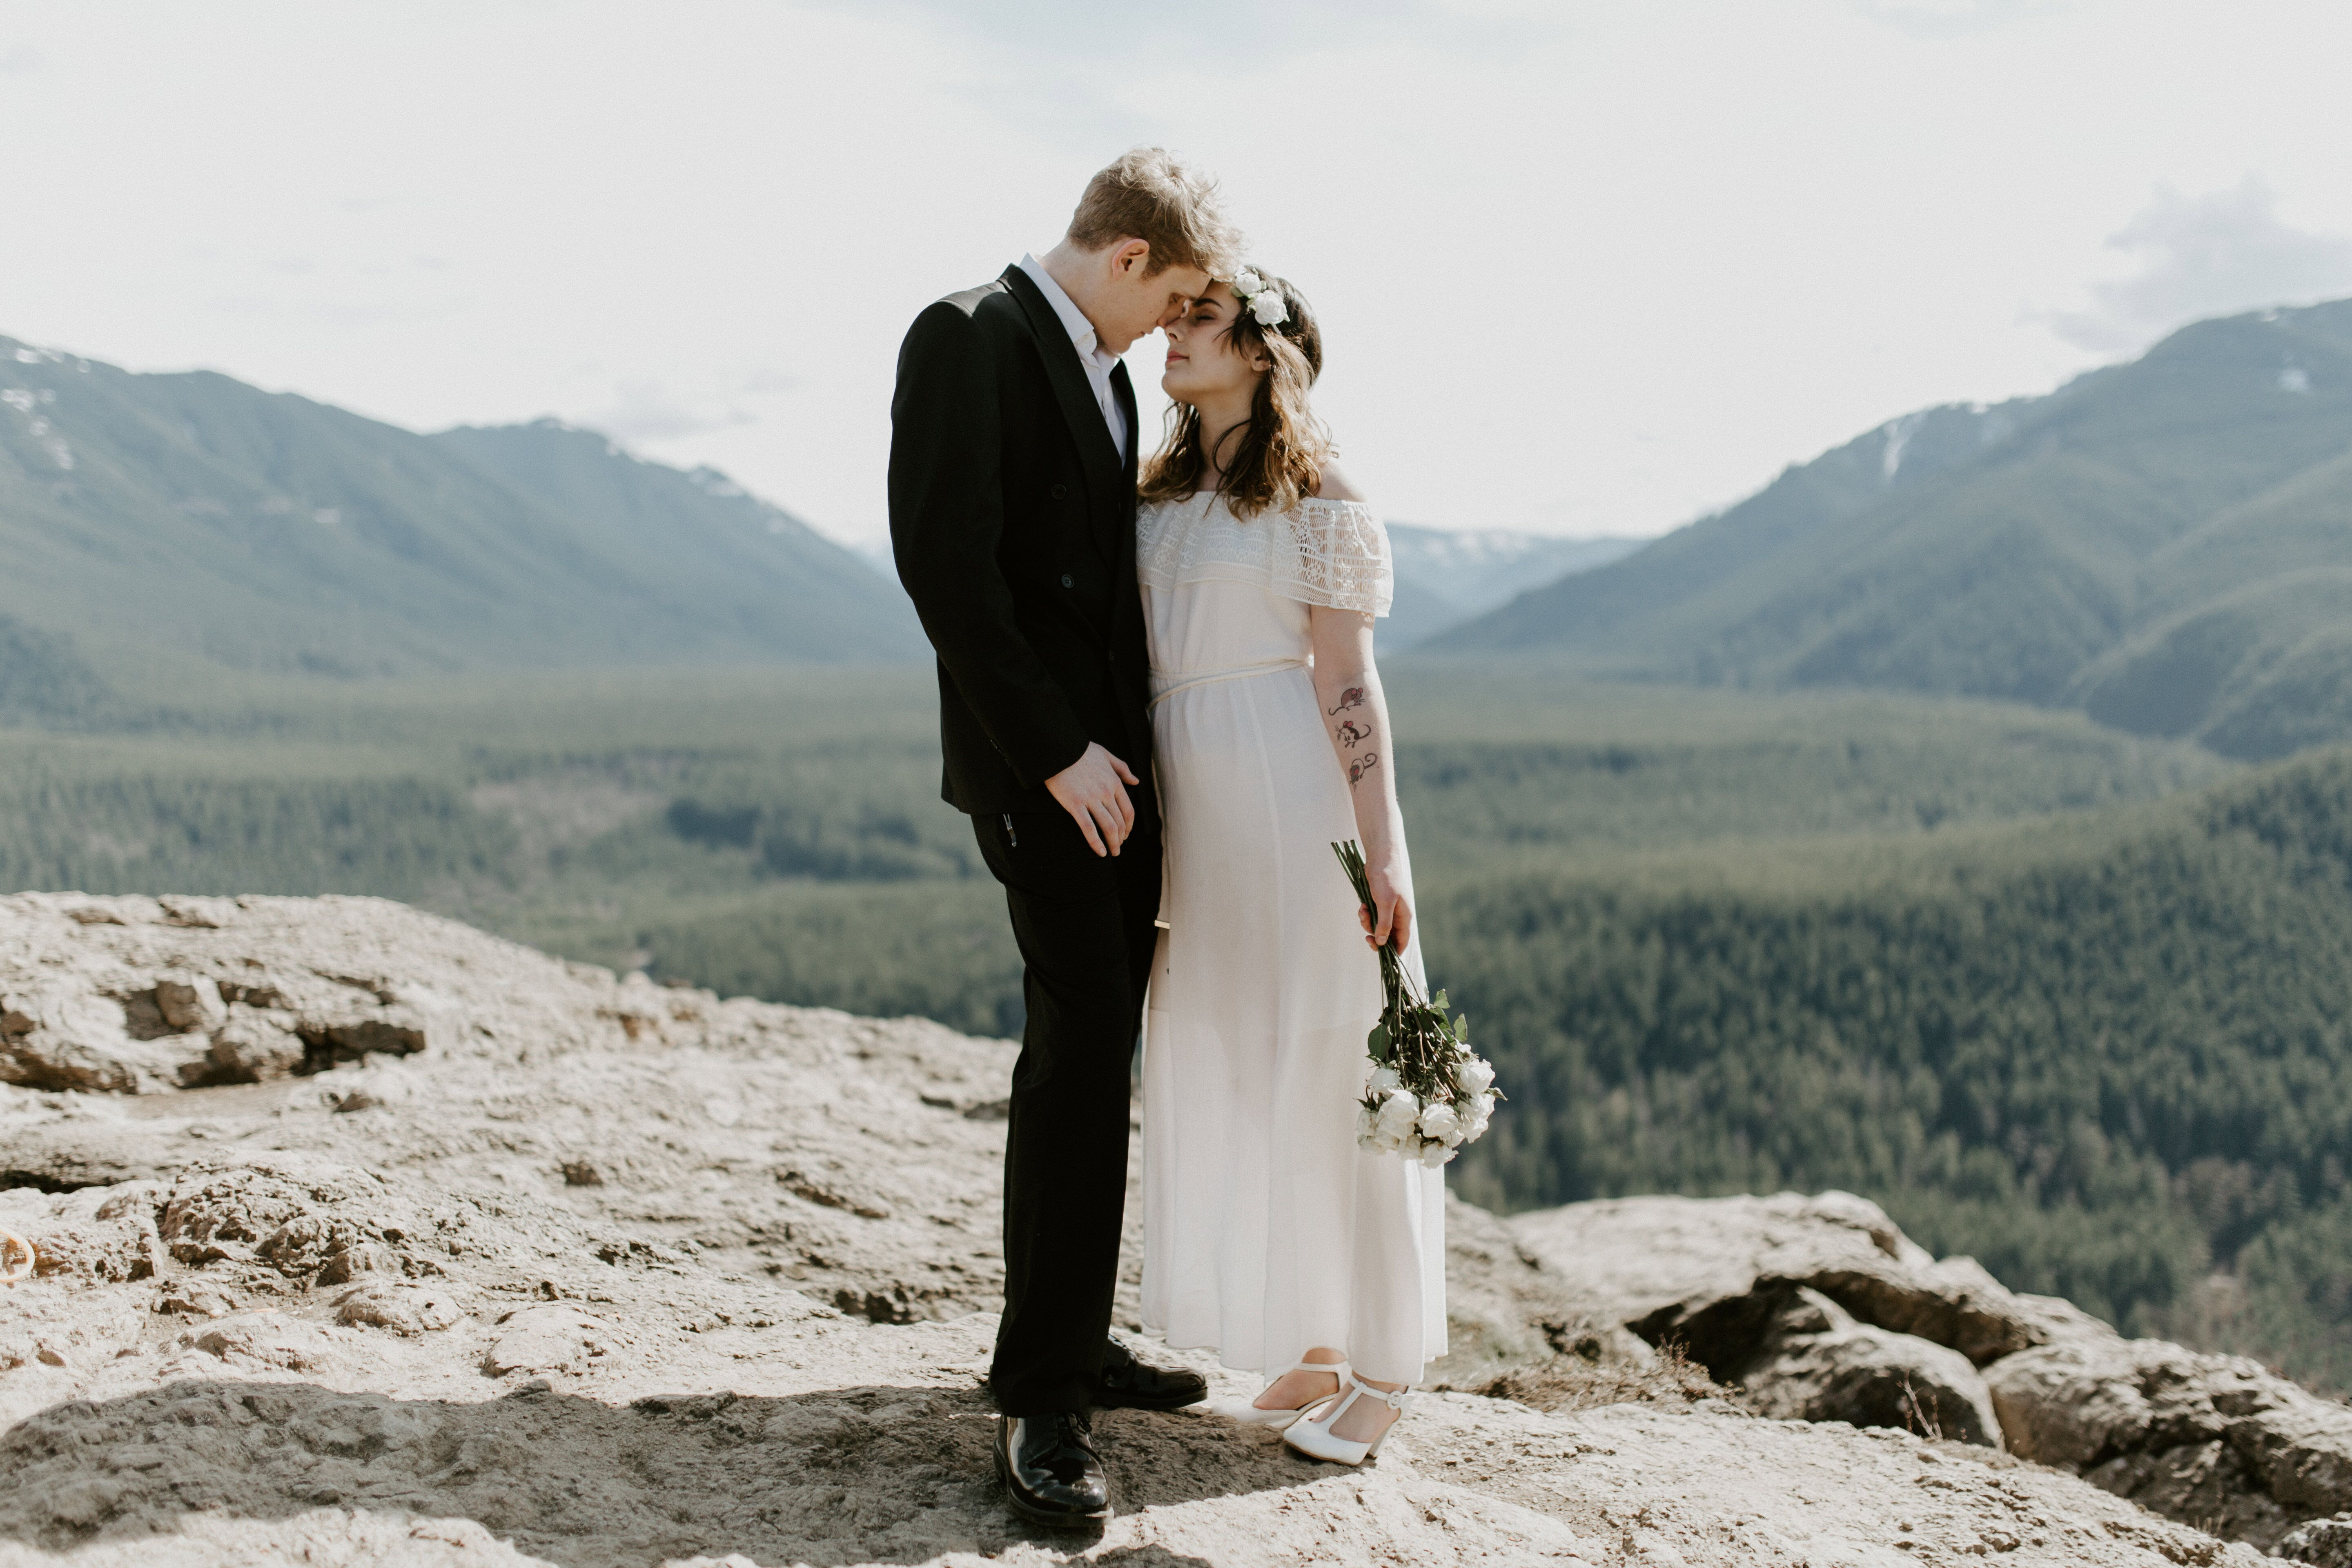 Michael and Winnifred kiss while standing near the cliff of Rattlesnake Ledge. Elopement adventure shoot at Rattlesnake Ledge, Washington.